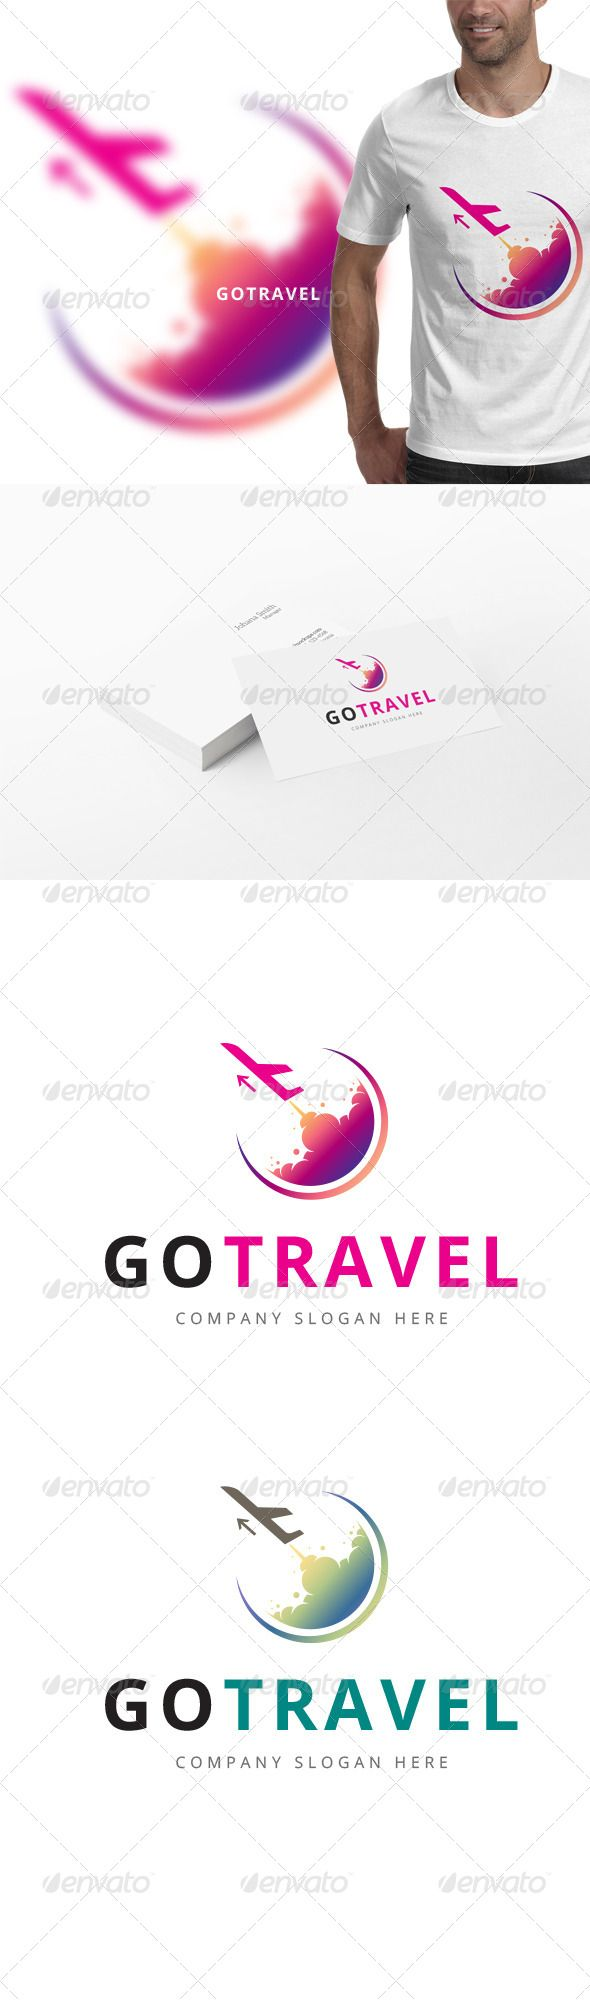 25 best travel logo ideas on pinterest logo for free travel